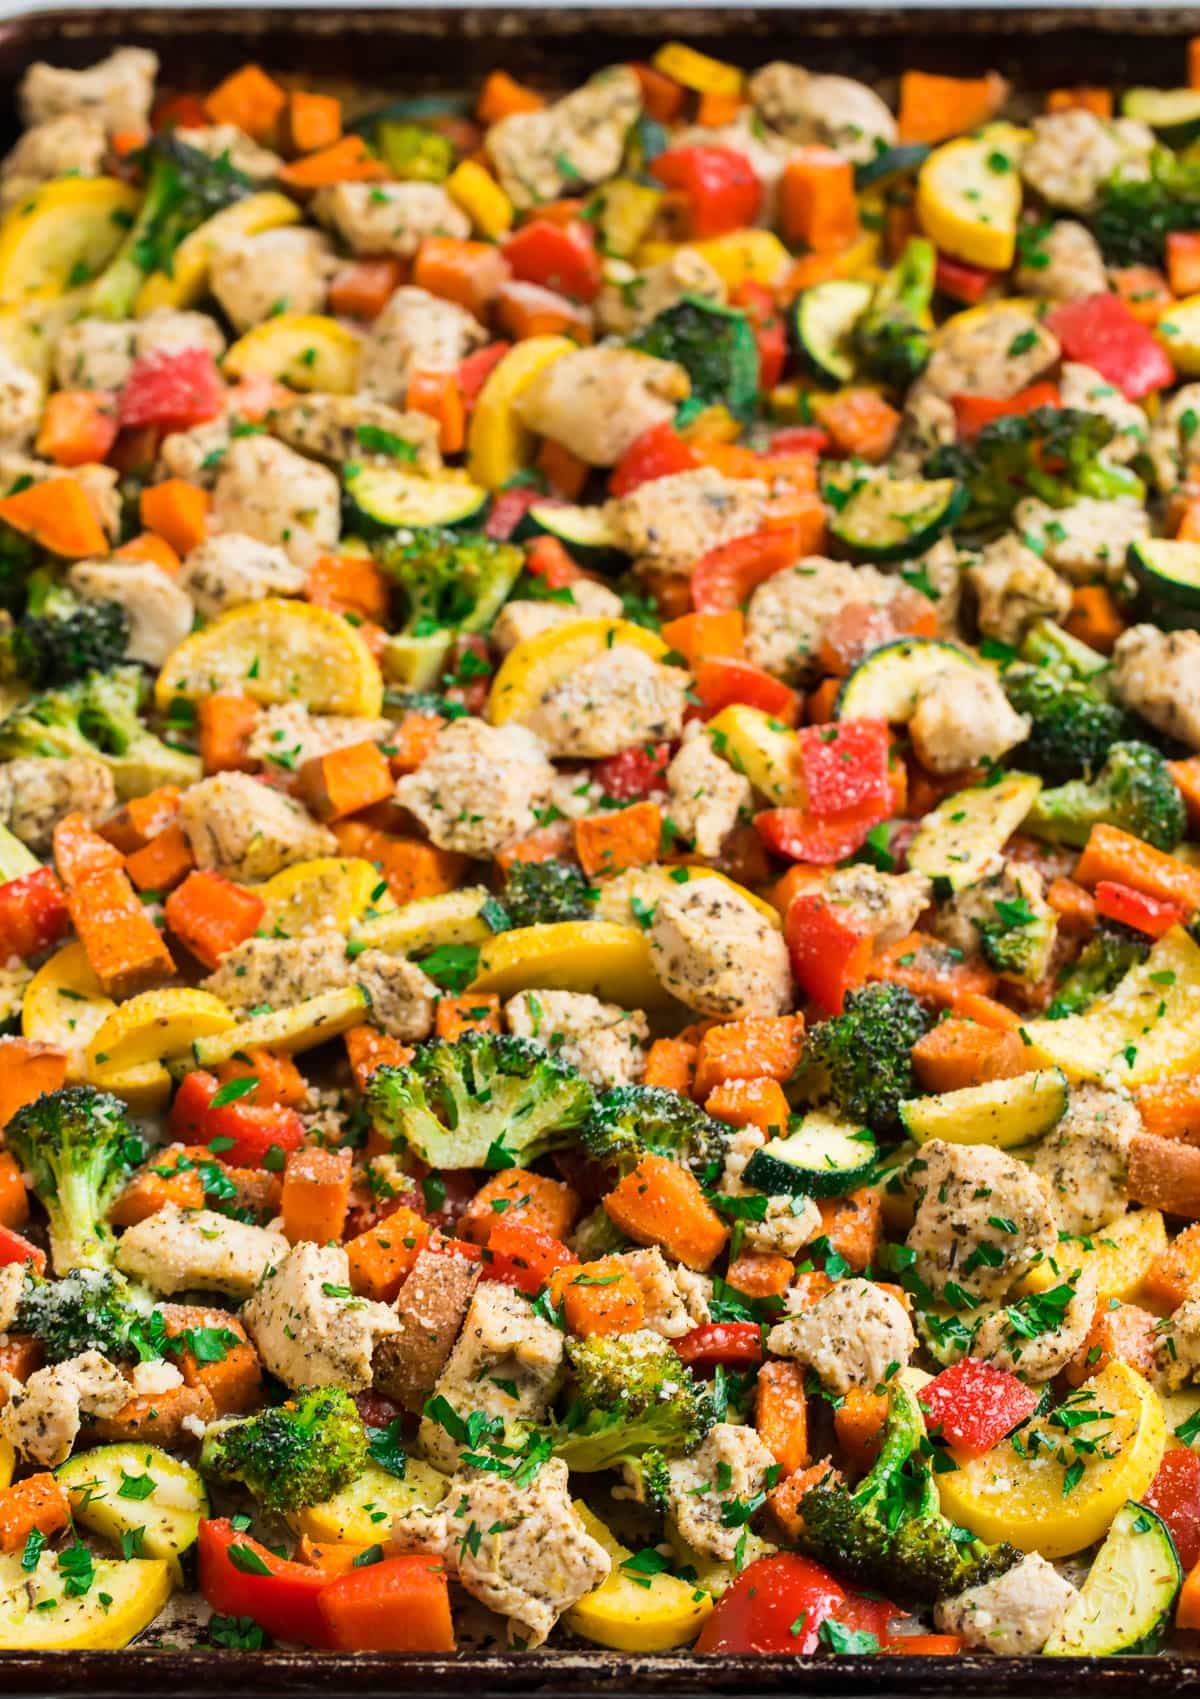 A sheet pan full of vegetables and chicken